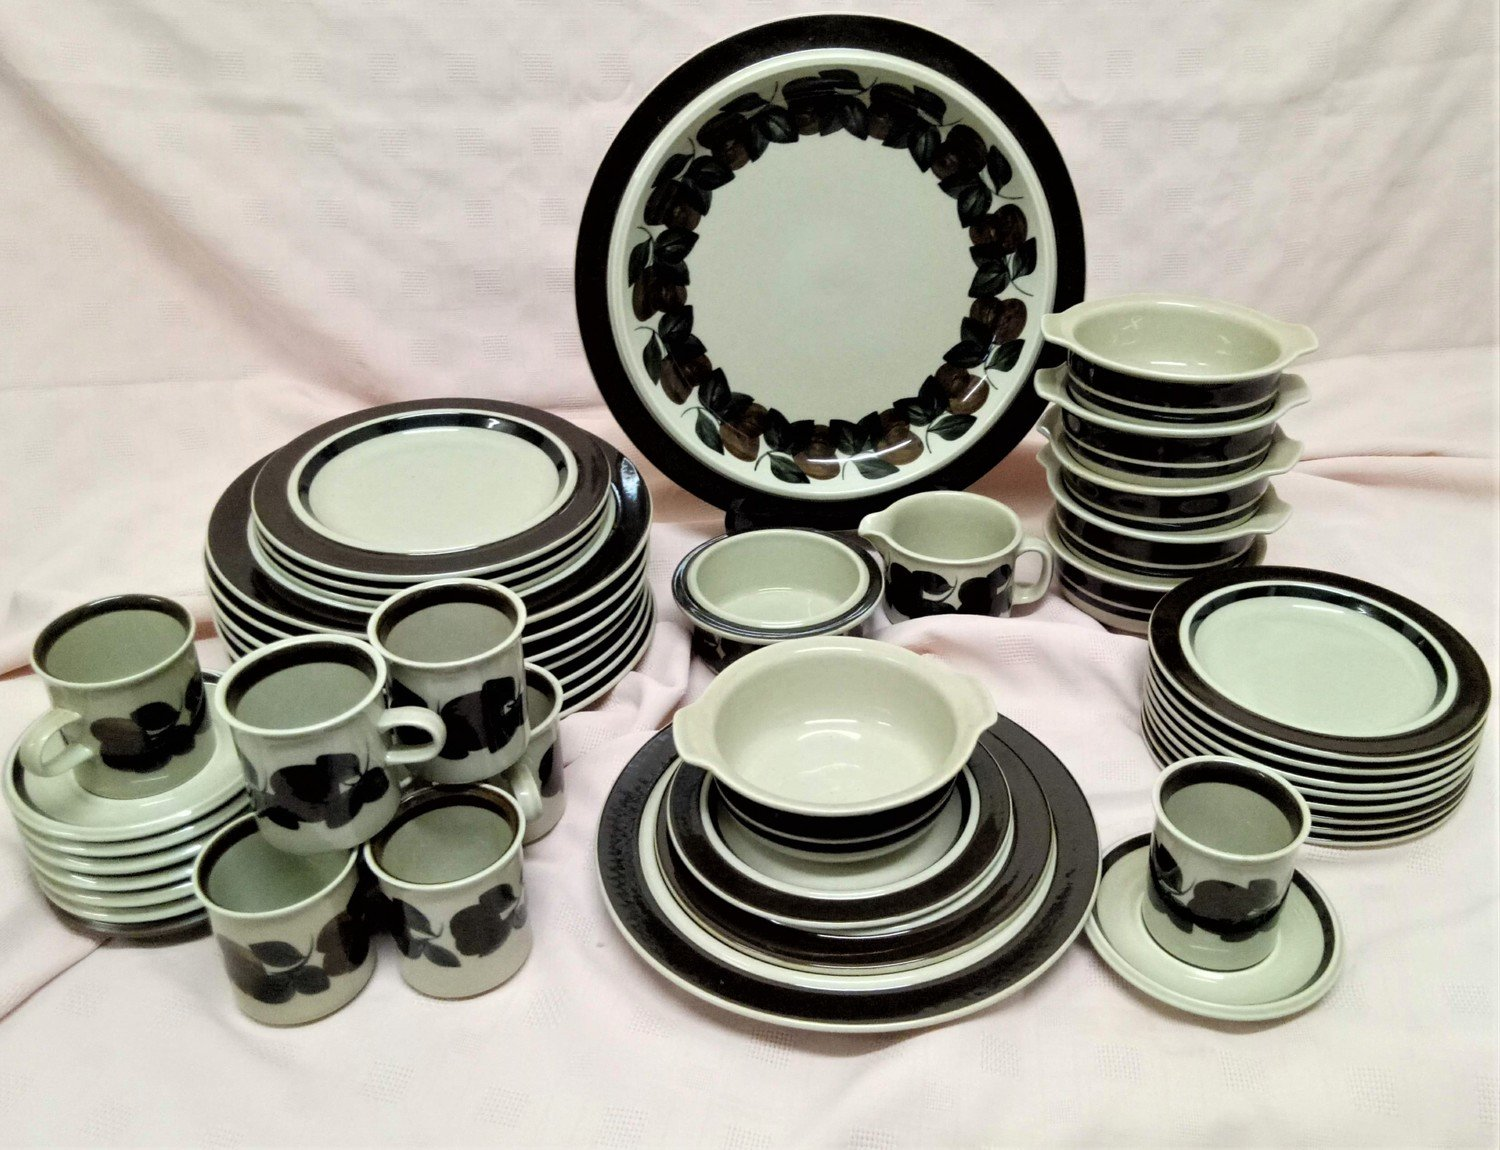 Dinner Set by Ruija for Arabia Finland,1970 #325- 50